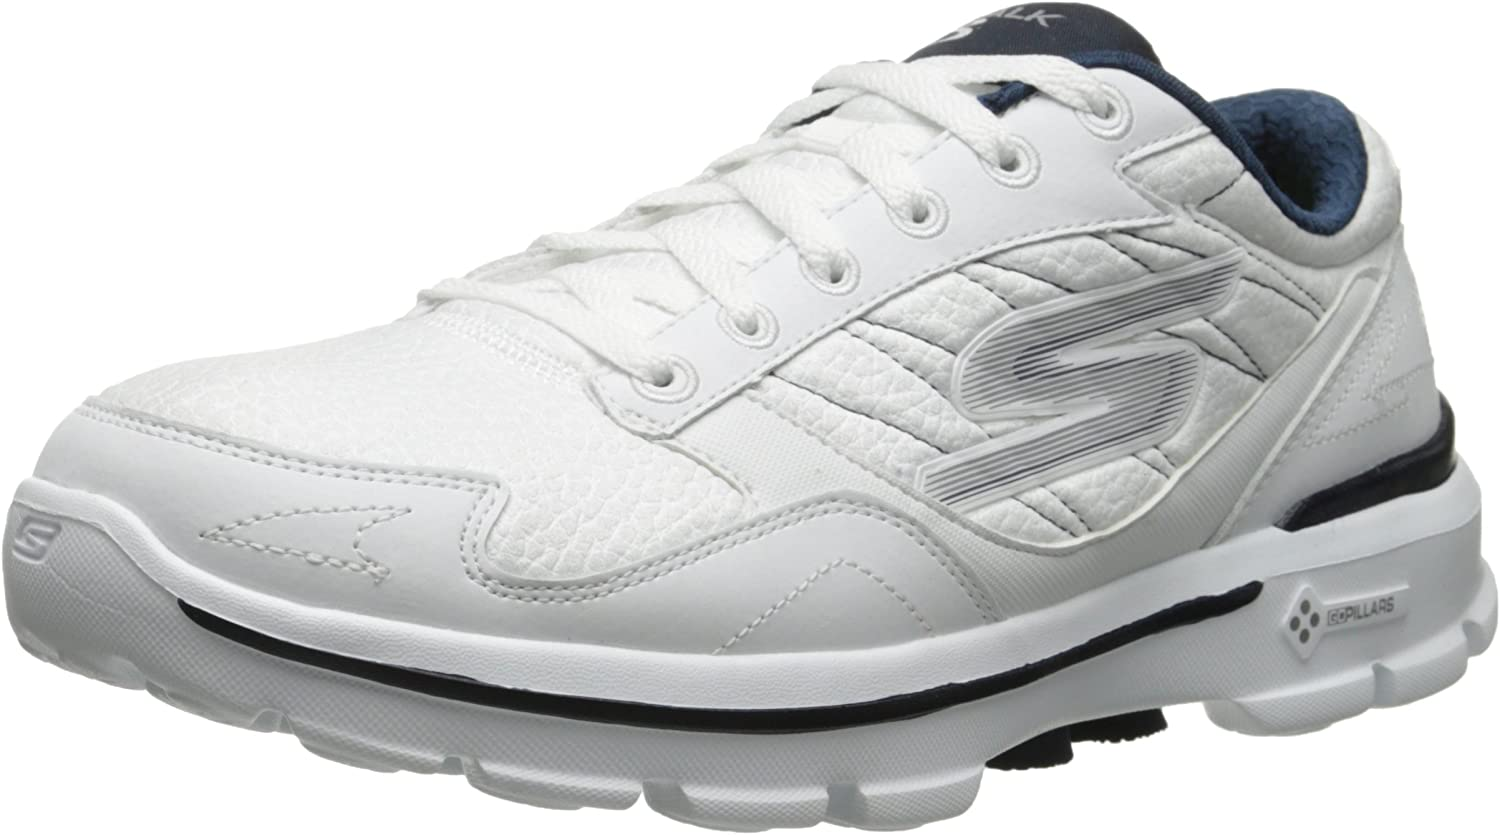 Skechers Performance Men's Go Walk 3 Compete Lace-Up Walking shoes